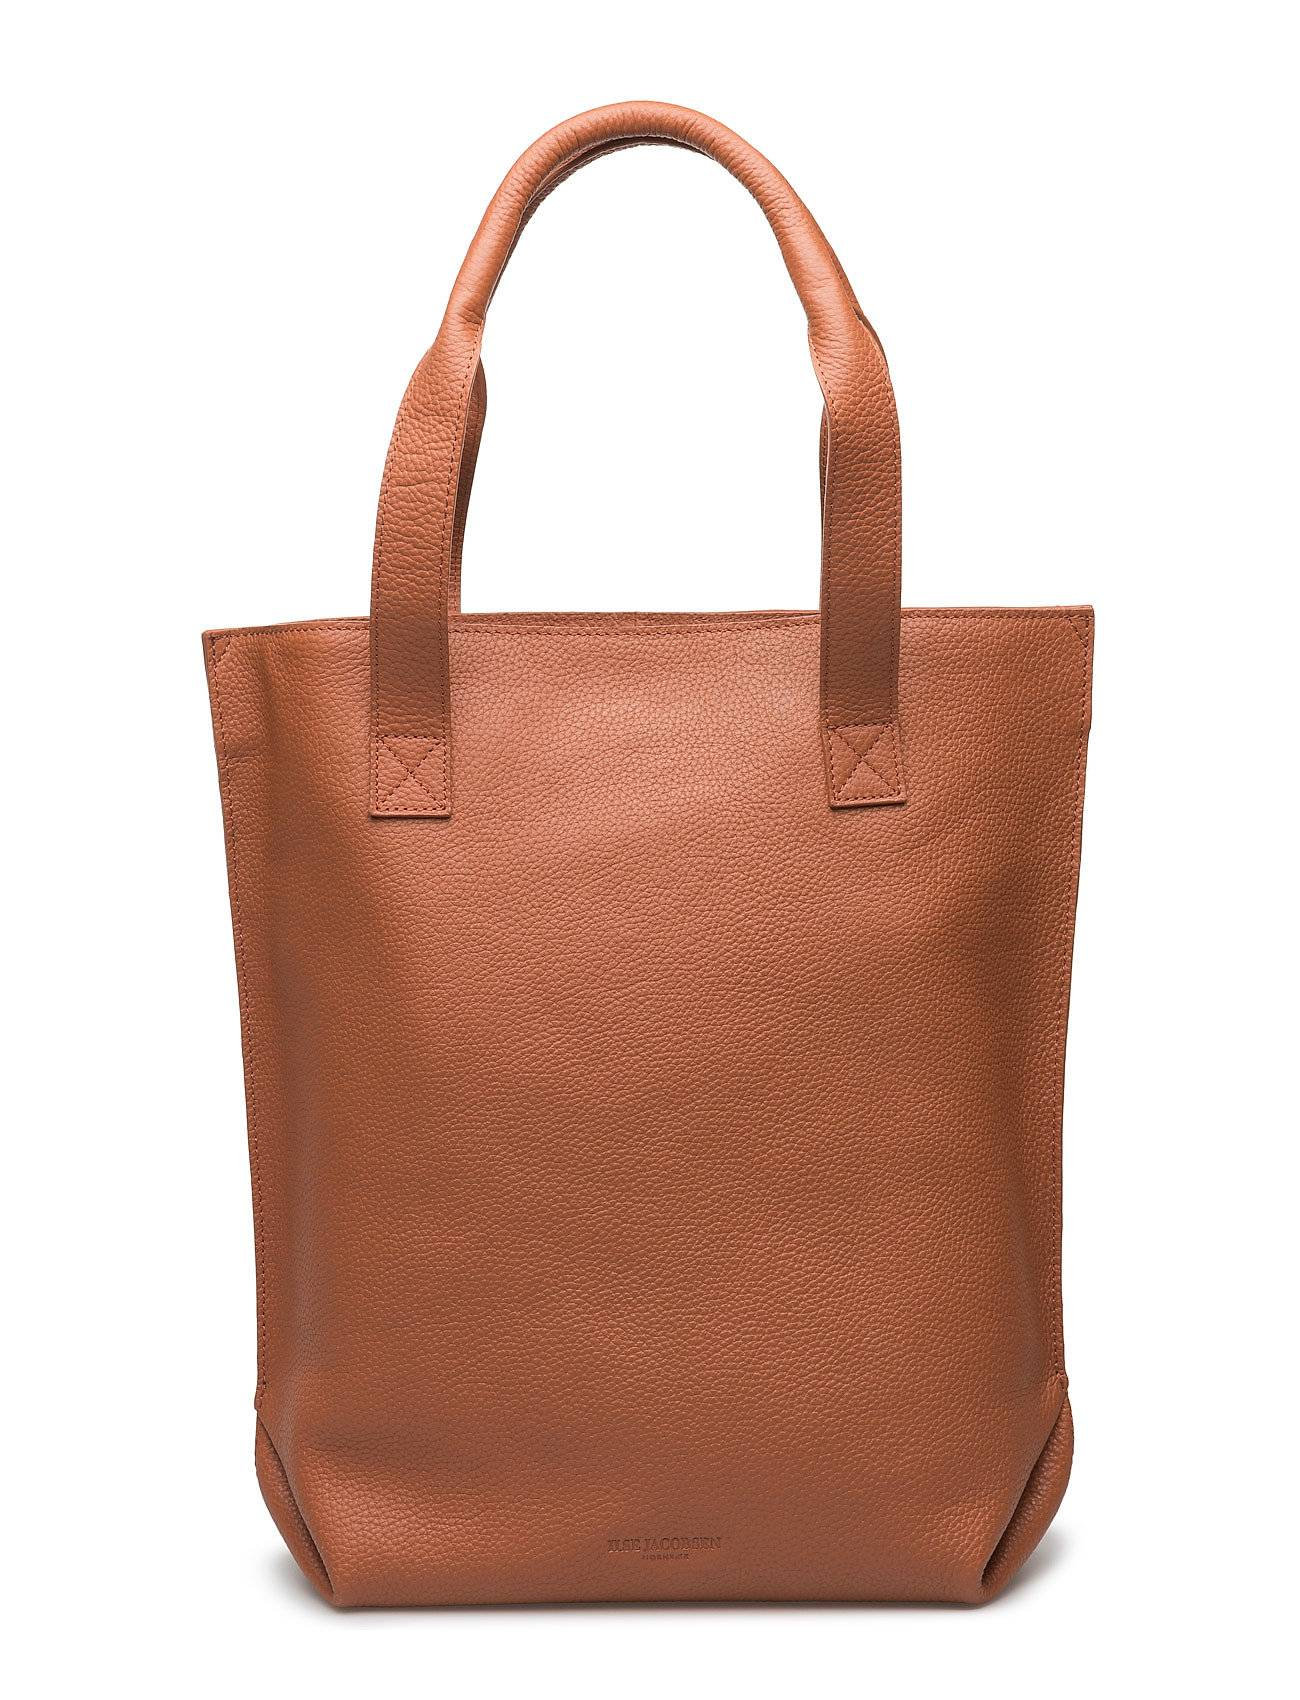 Ilse Jacobsen Leather Shopper